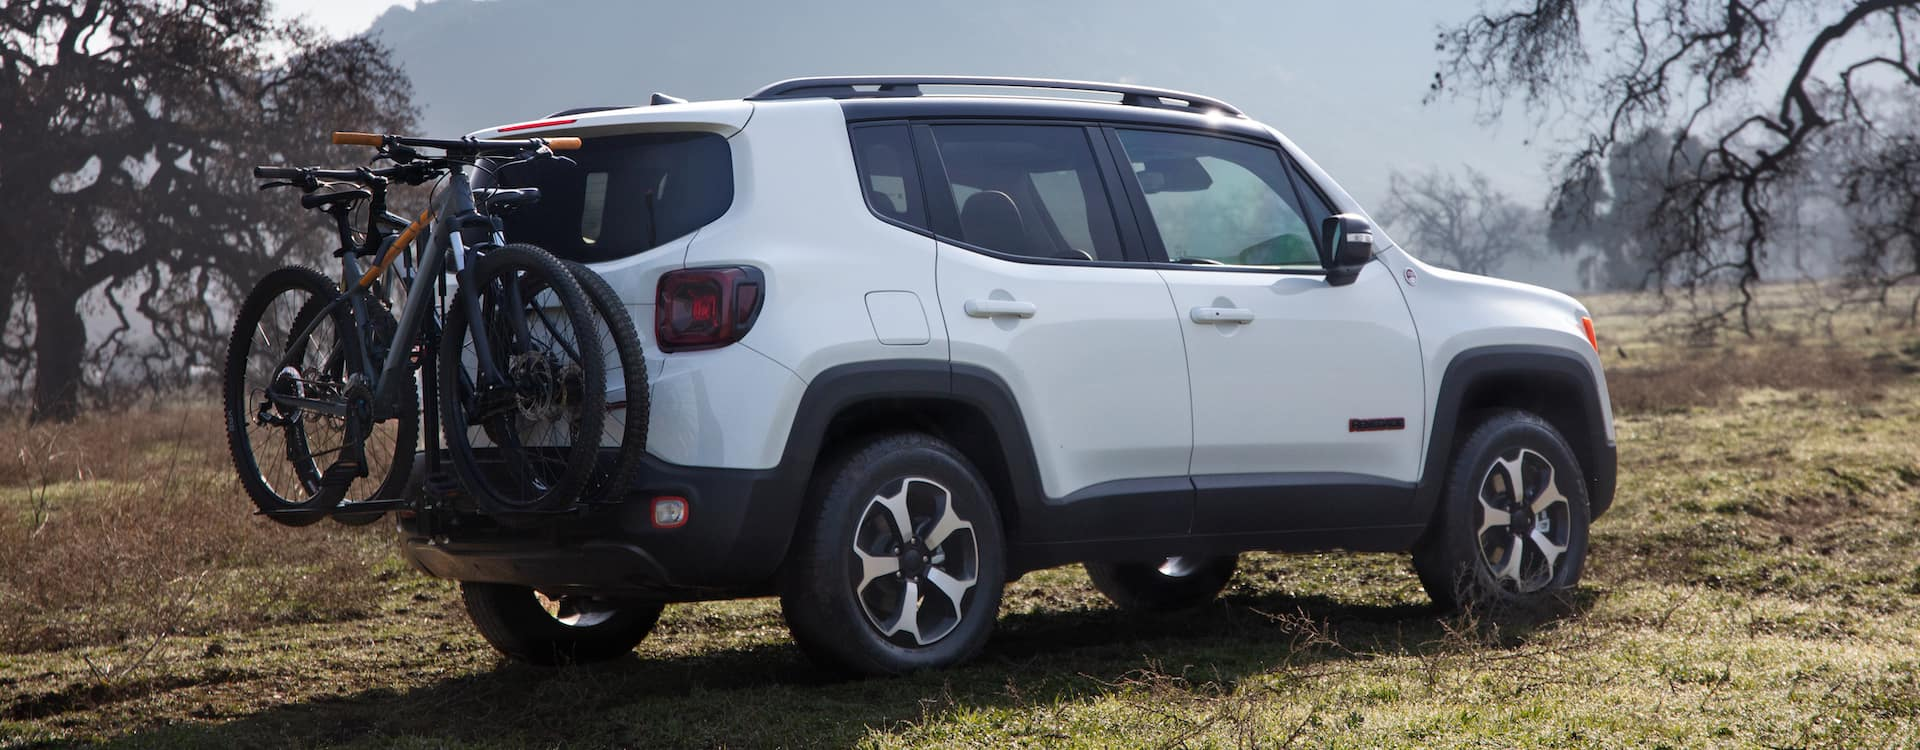 Compare the 2021 Jeep Renegade and the 2021 Chevrolet Equinox at Carolina CDJR in Elizabeth City, NC | 2021 Jeep Renegade parked with bikes on the back